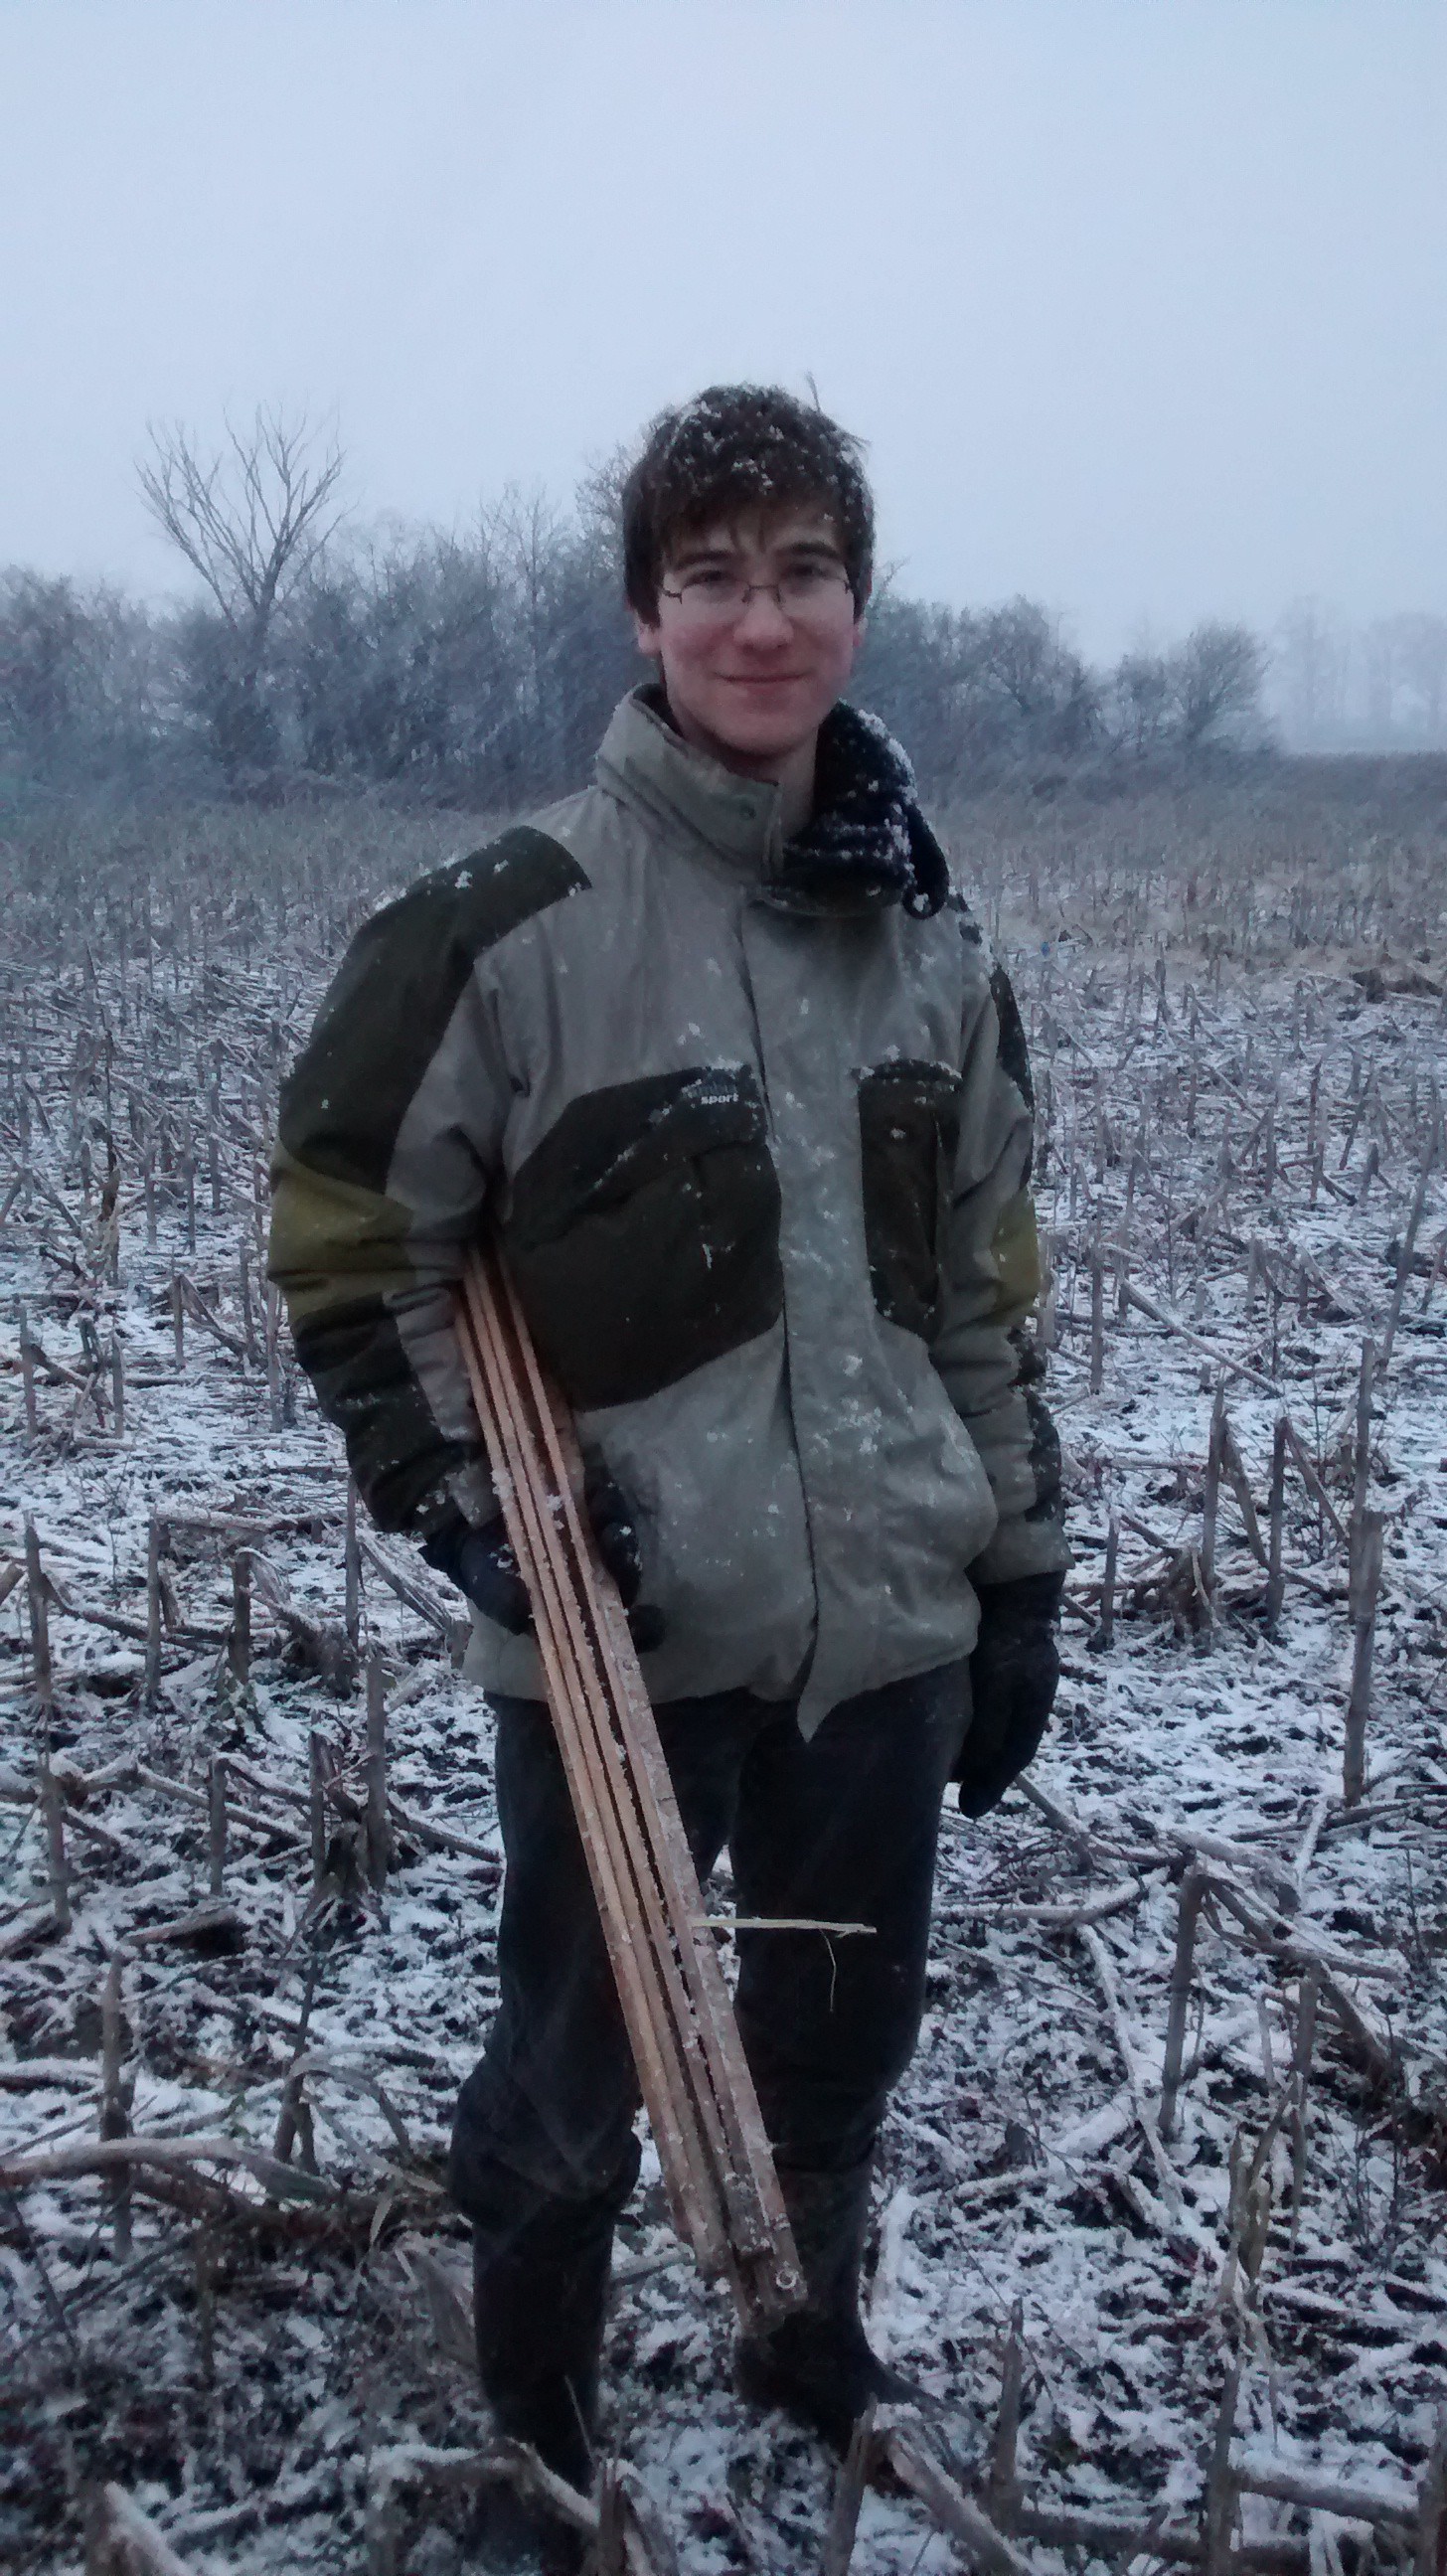 Michael McTavish sets up mulch plots to assess earthworm interactions with soil amendment at Glenorchy Conservation Area, Ontario, Canada, in November 2014. Credit: Heather Cray.